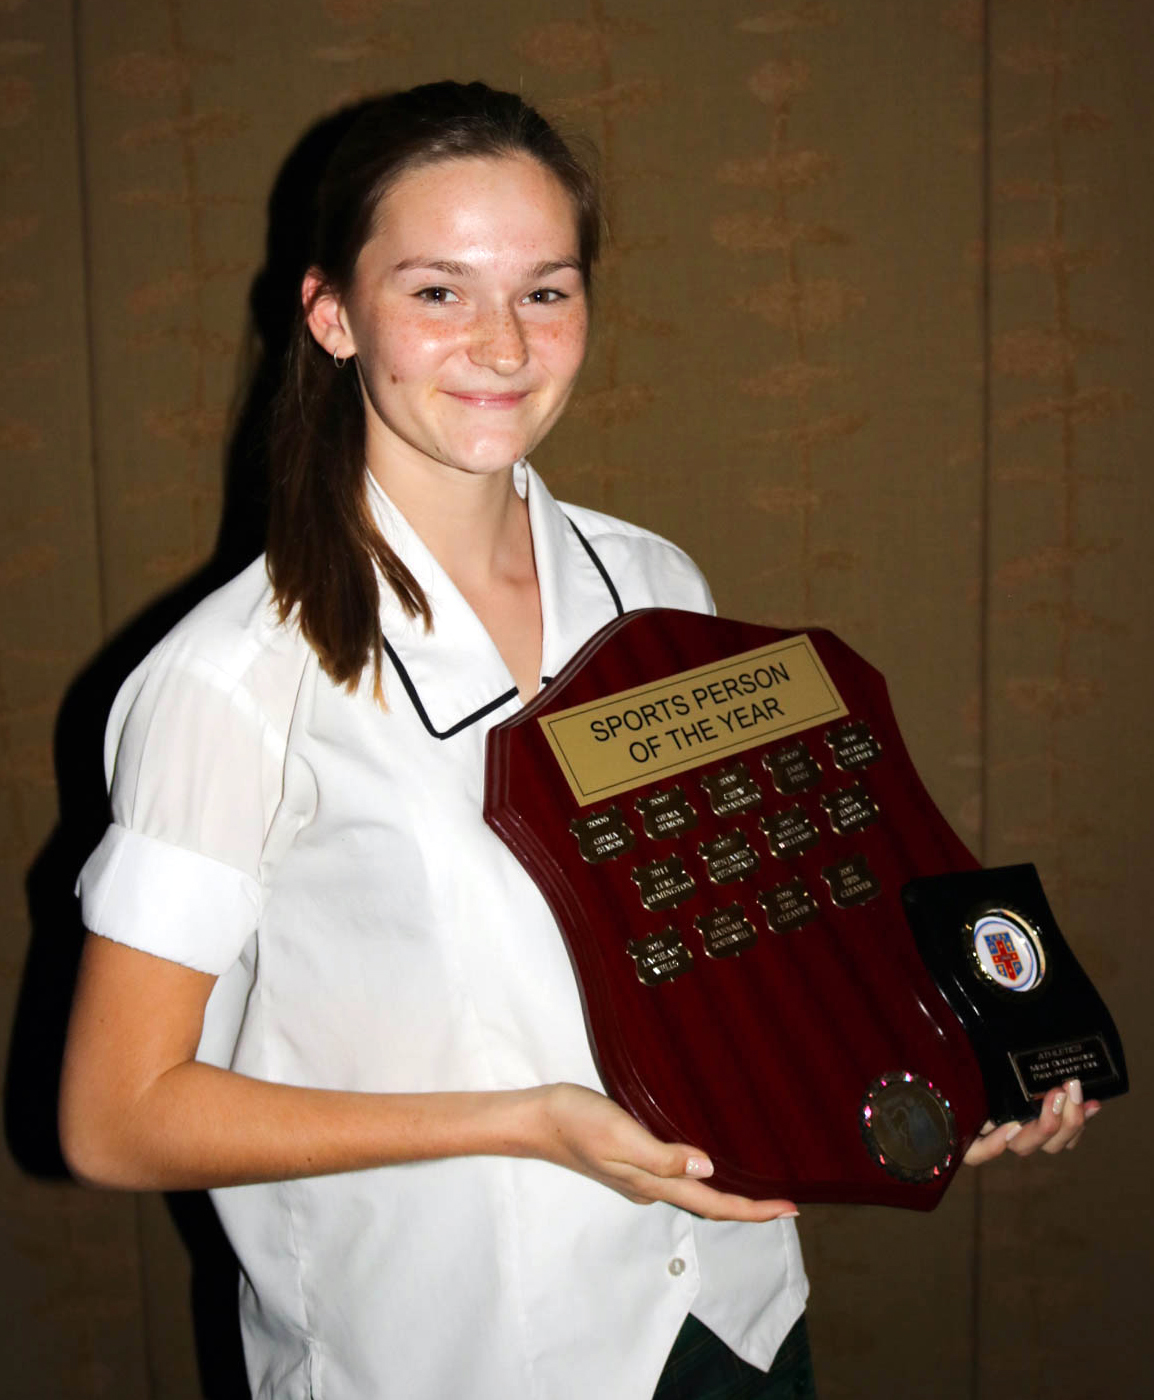 2017 Sportsperson of the Year - Erin Cleaver